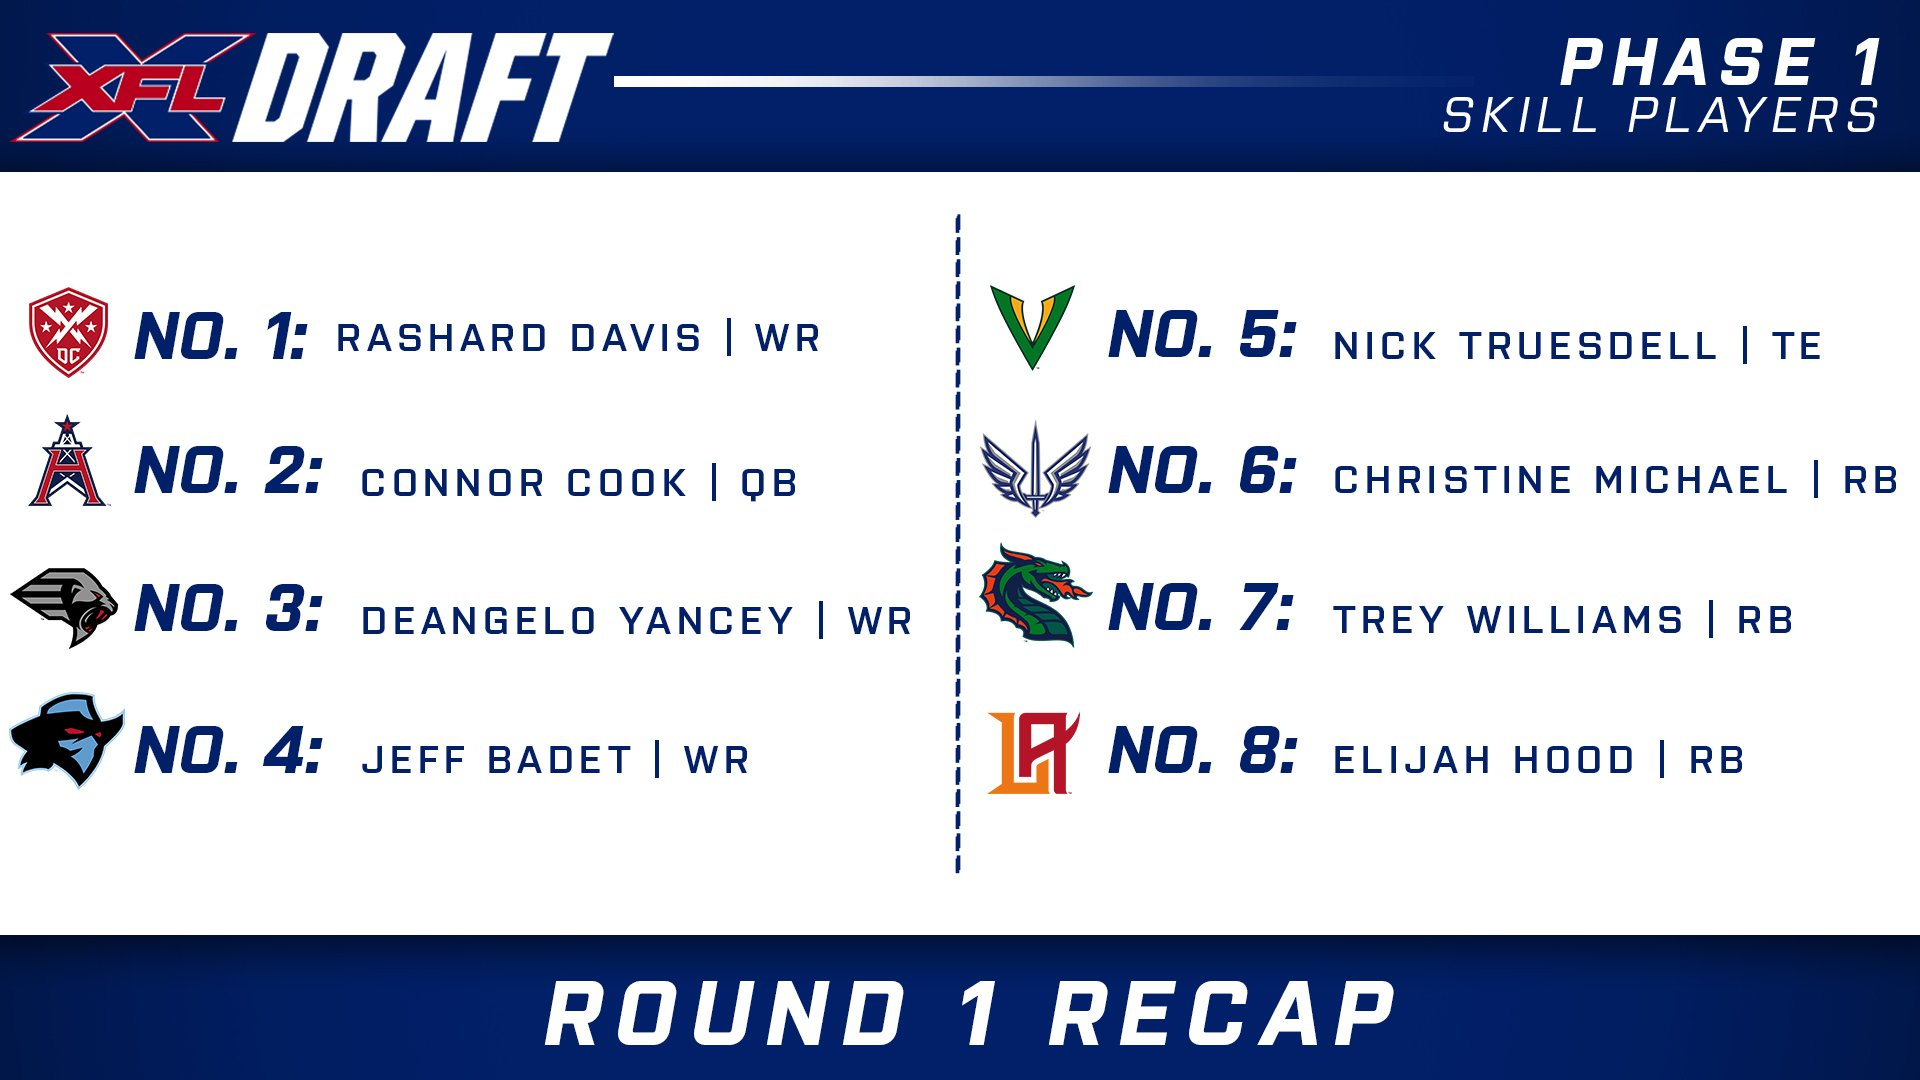 Full XFL Draft Results From All Five Phases